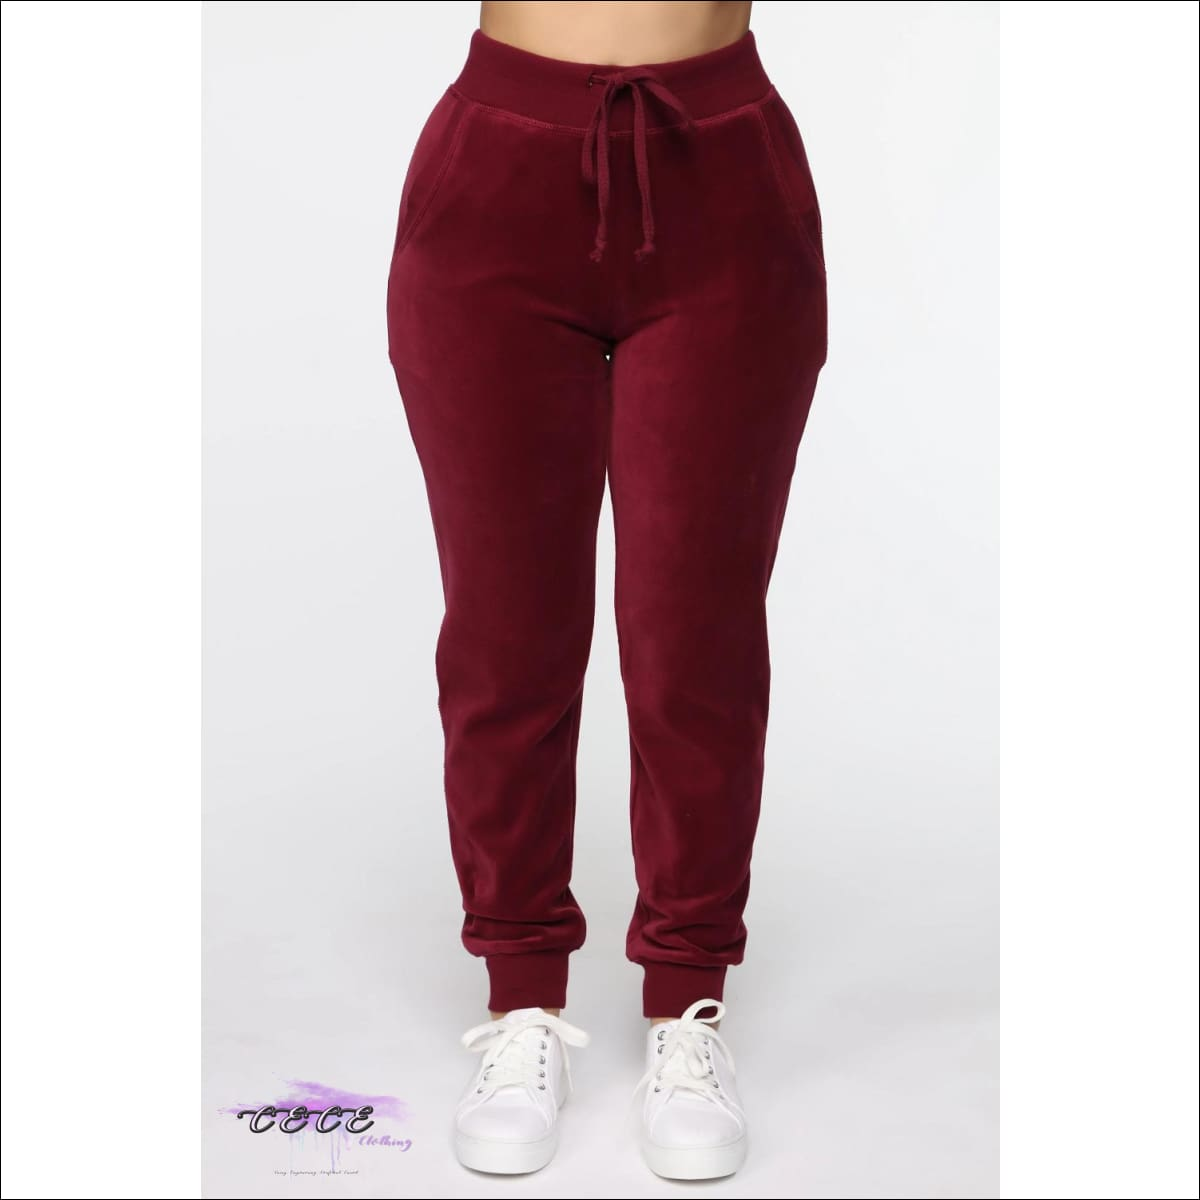 Tasty As Red Velvet Cake Two Piece Red Velour Tracksuit